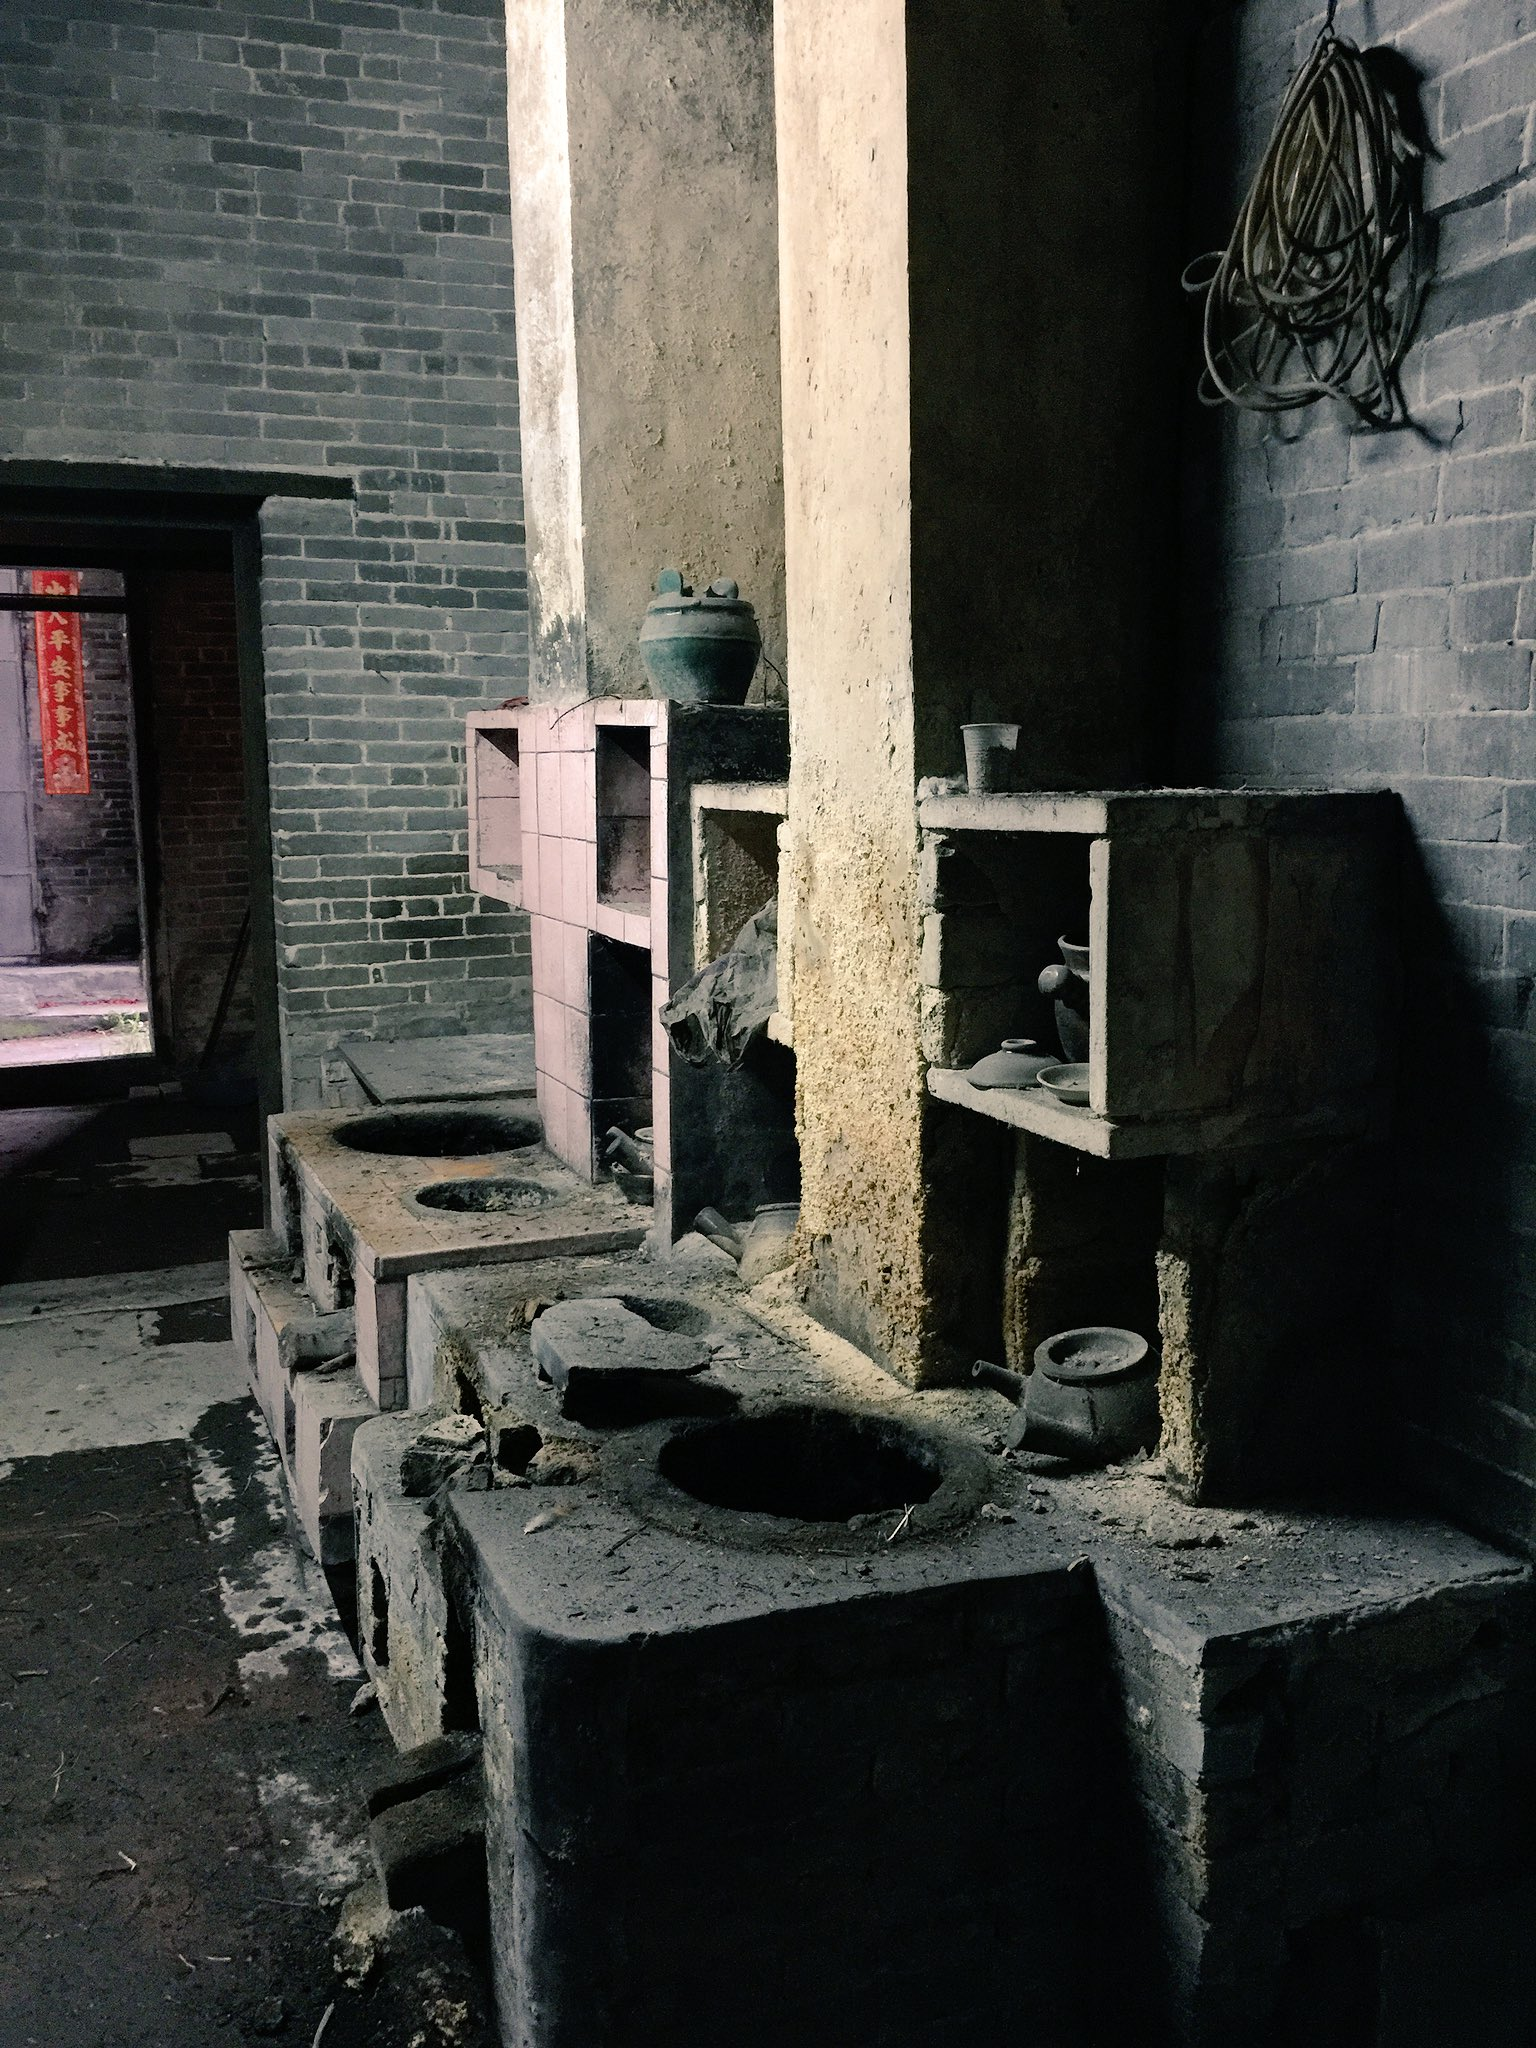 Kitchen in Longtian village, Lechong, Kaiping. #cahht2017 https://t.co/Jx5i3nZdkM